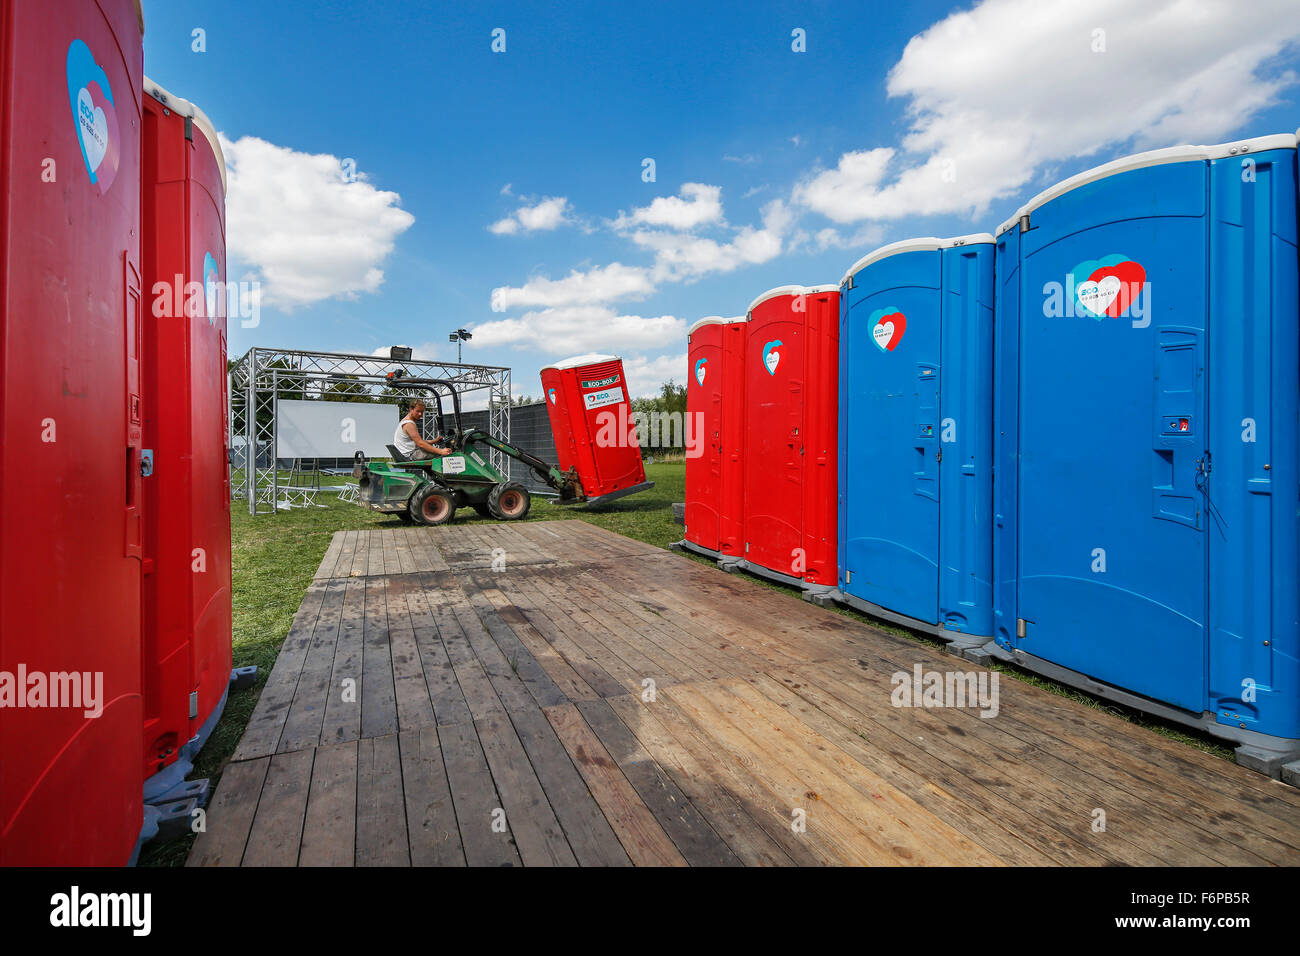 Placement of rows of colourful portable toilets at outdoor event - Stock Image